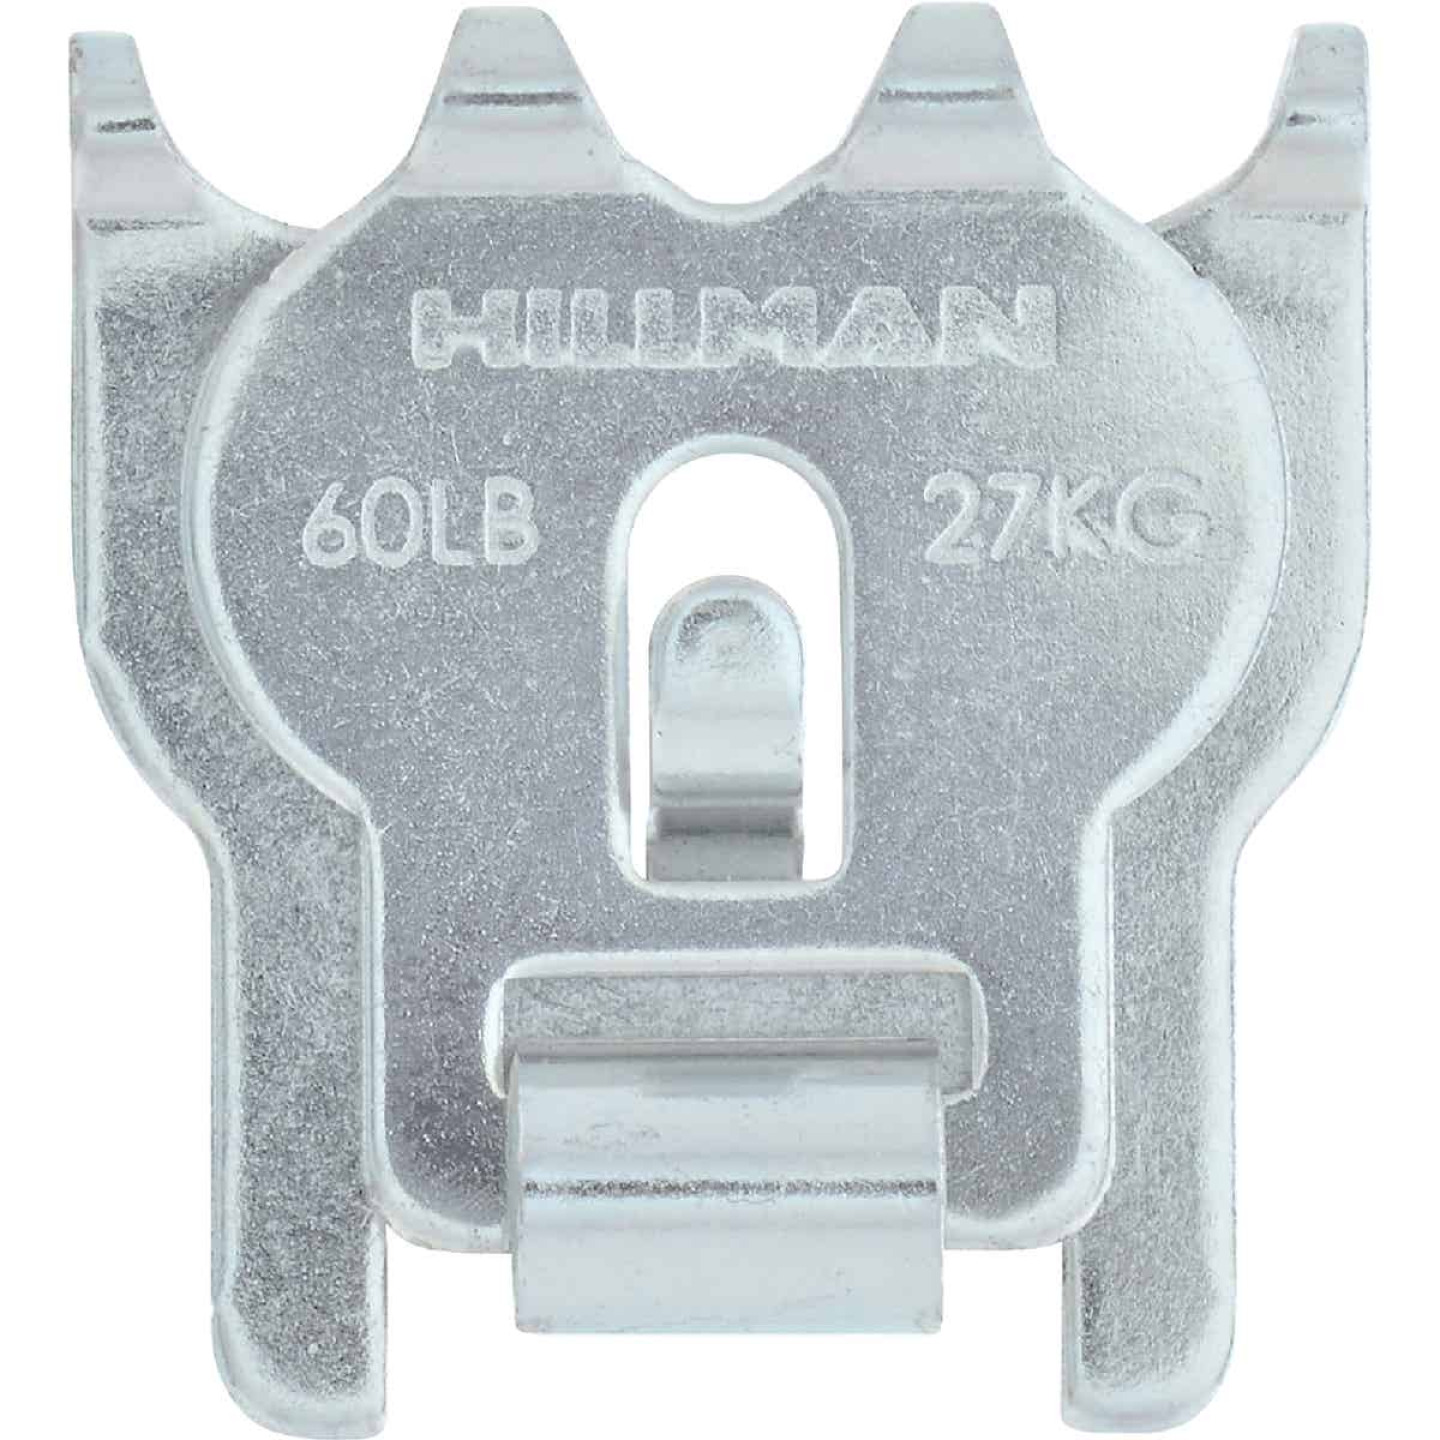 Hillman High and Mighty 60 Lb. Capacity Picture Hanger Image 2